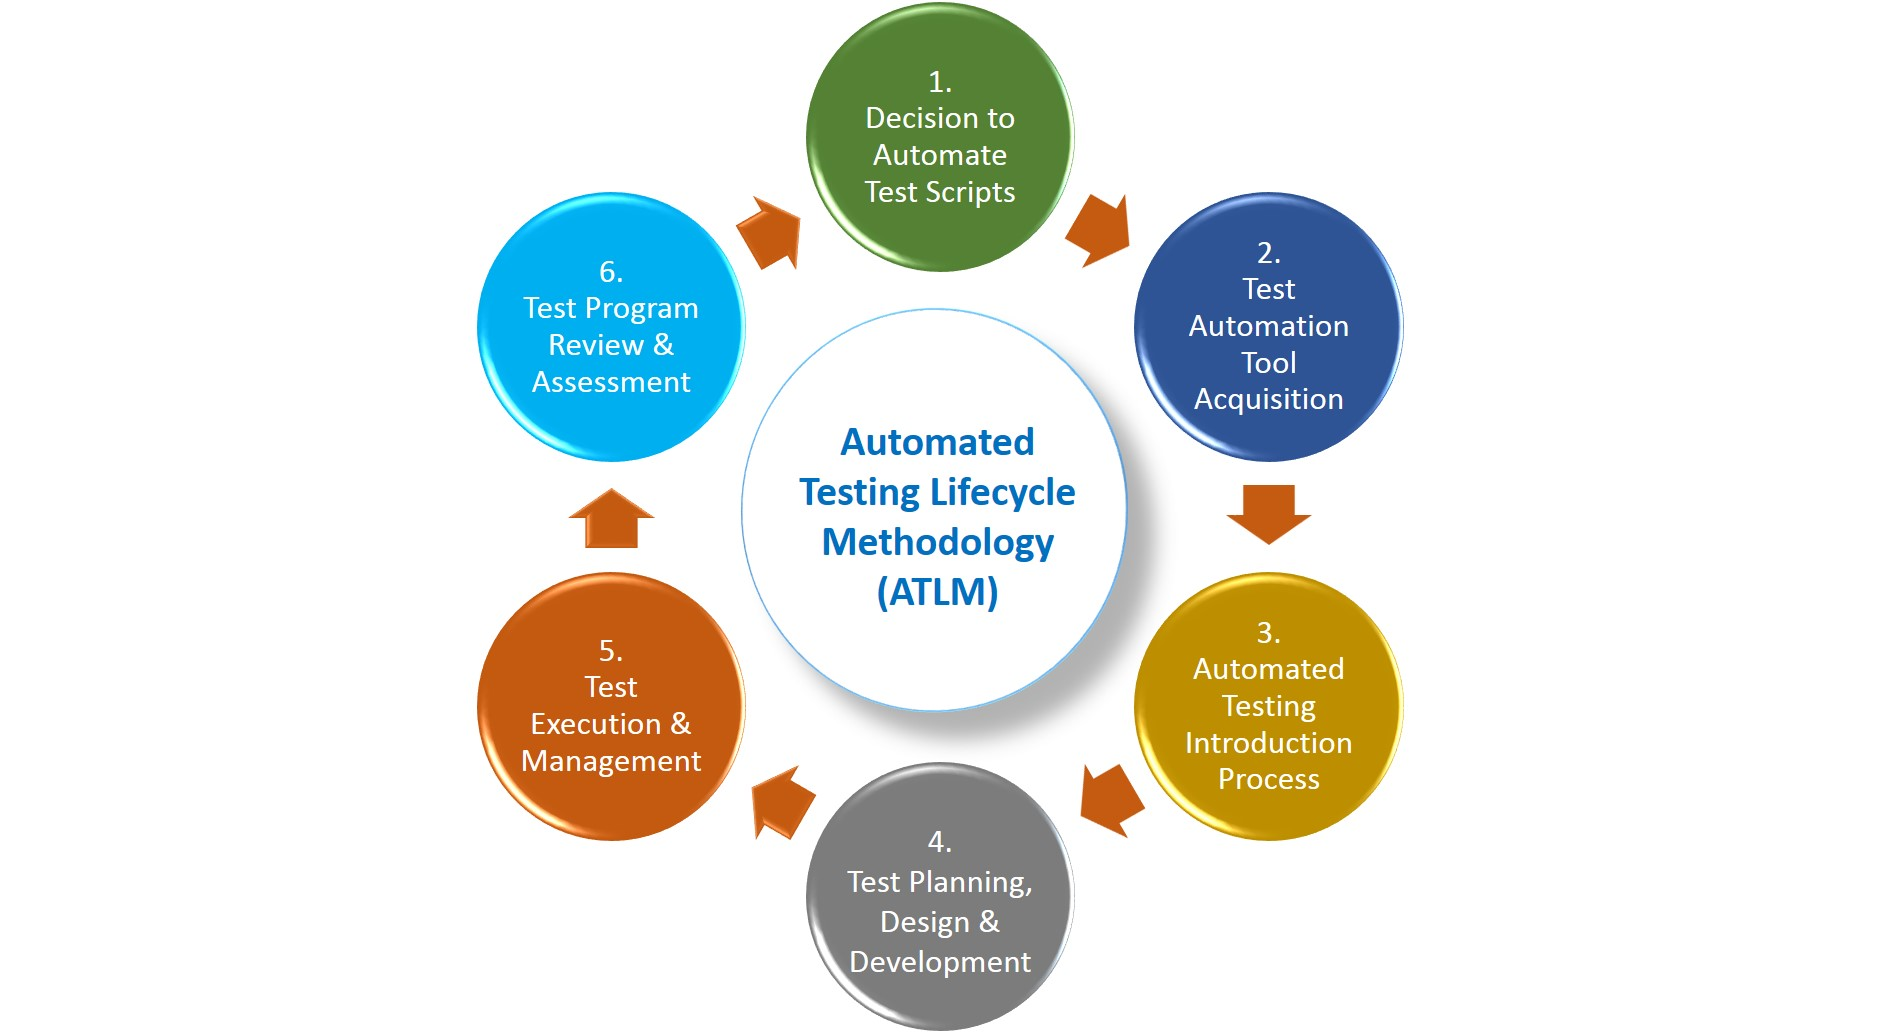 7 Quick Steps to Become a Great Automation Testing Engineer - DZone